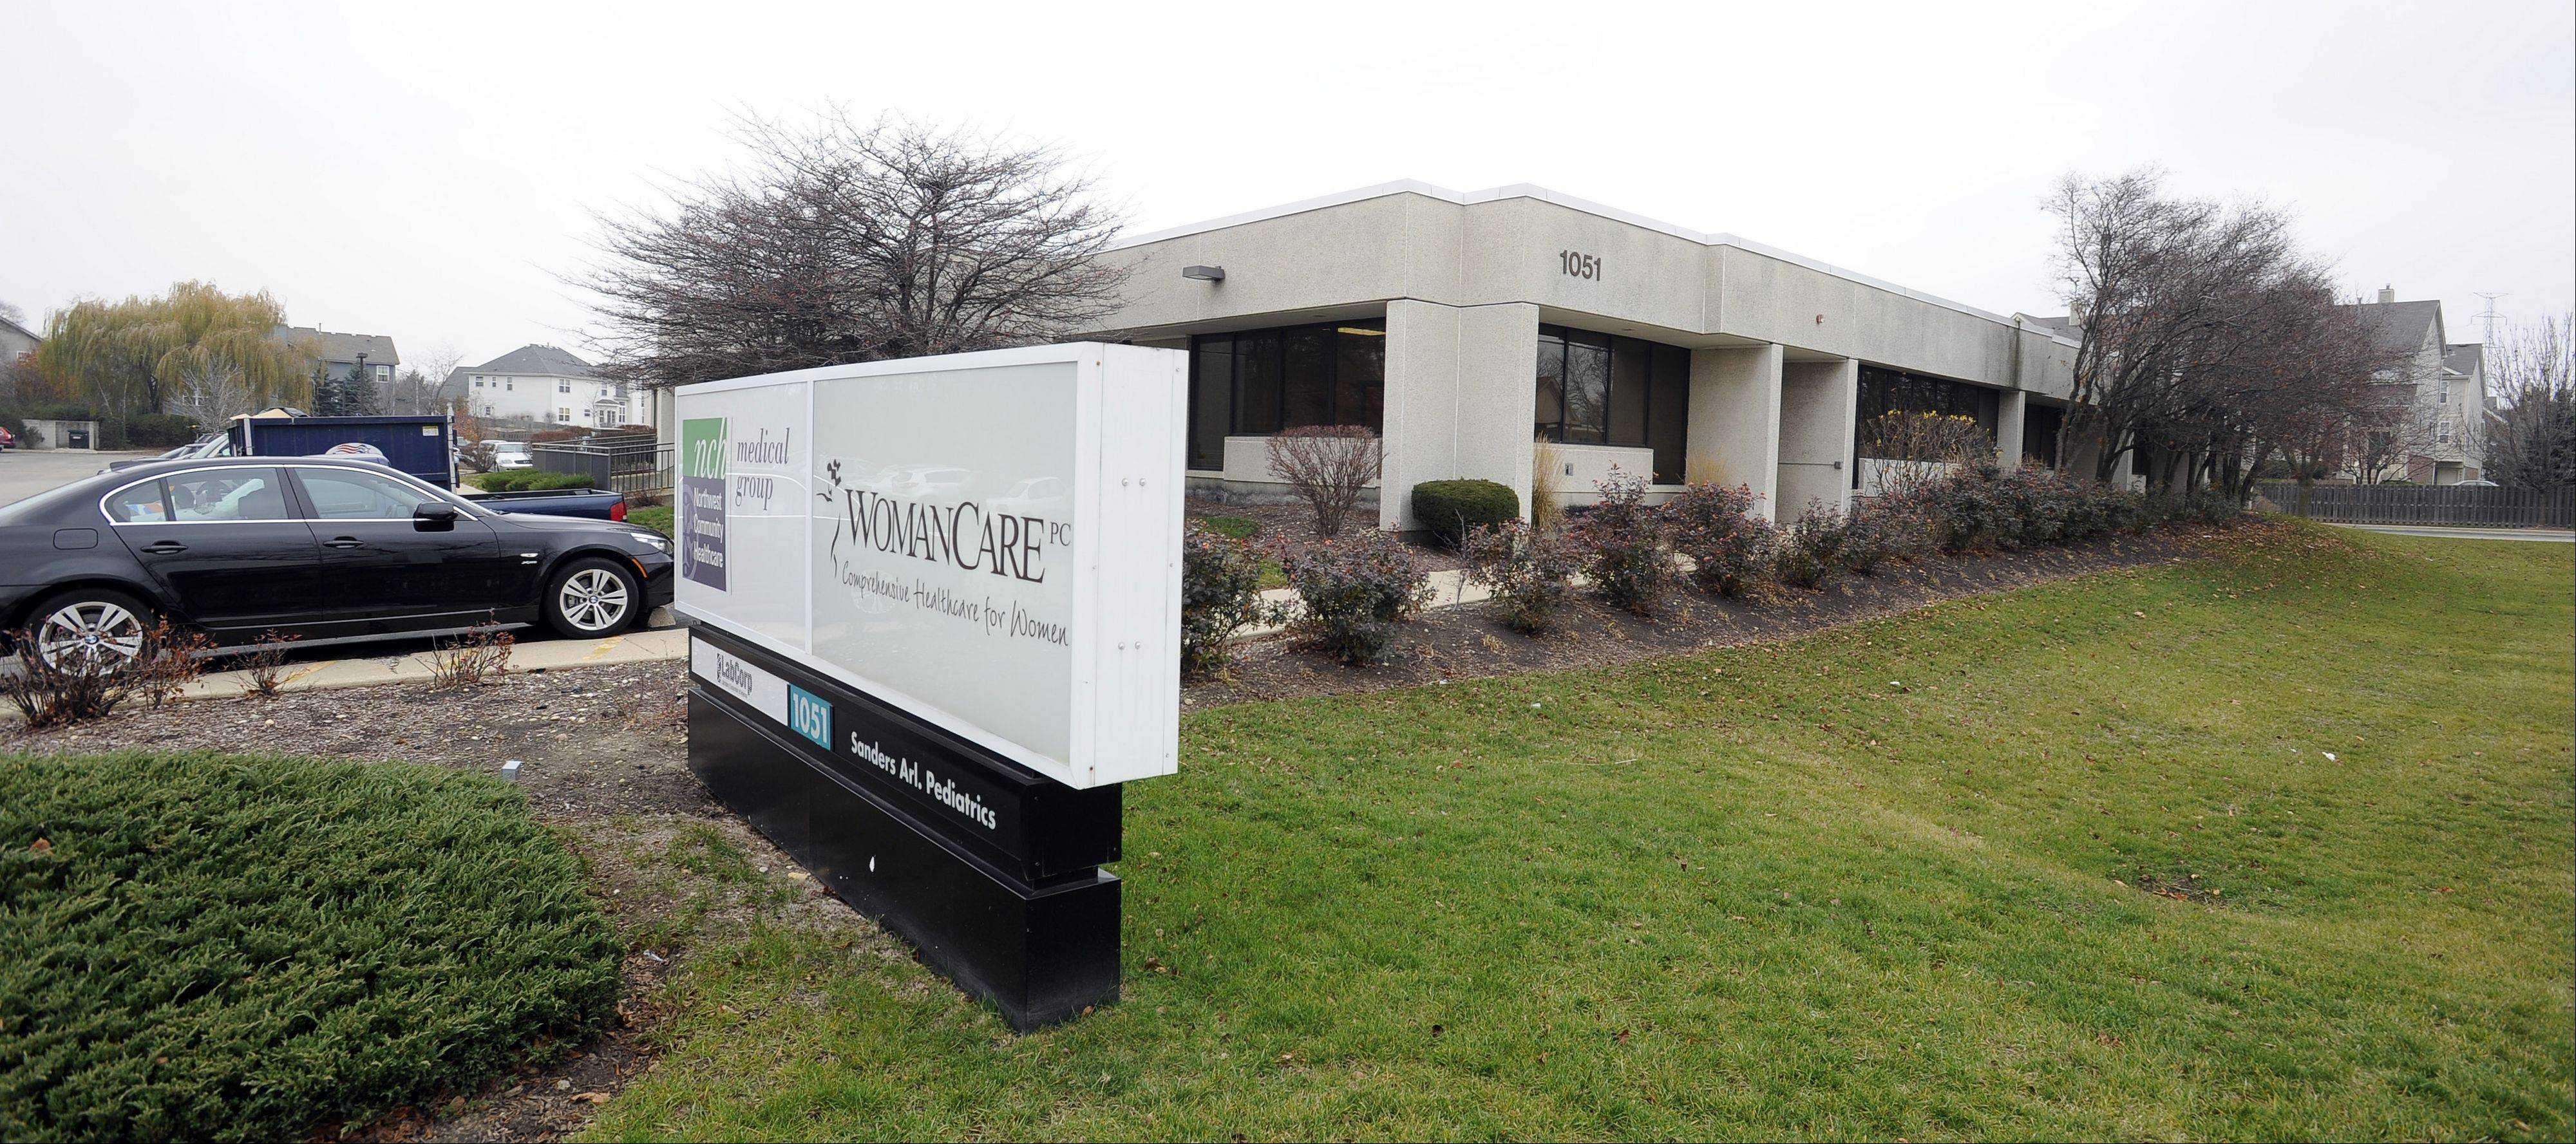 Despite concerns, Arlington Heights approves medical building expansion